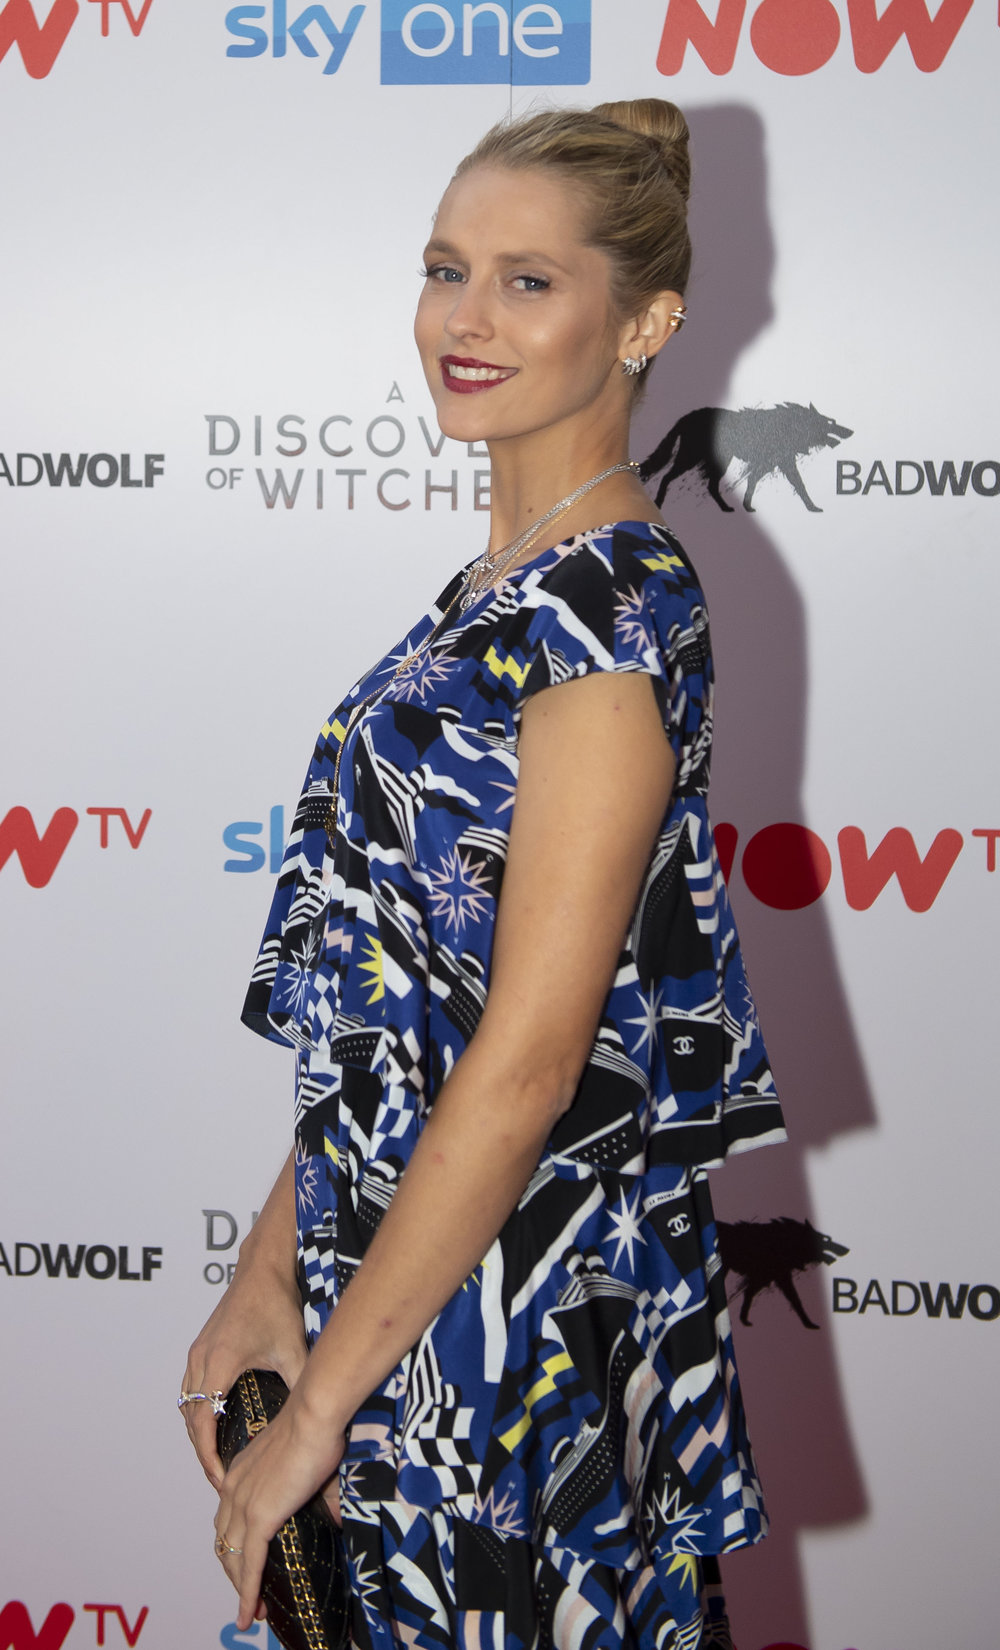 CARDIFF, WALES - SEPTEMBER 05: Teresa Palmer attends the UK Premiere of 'A Discovery Of Witches' at Cineworld on September 5, 2018 in Cardiff, Wales. (Photo by Matthew Horwood/Getty Images)